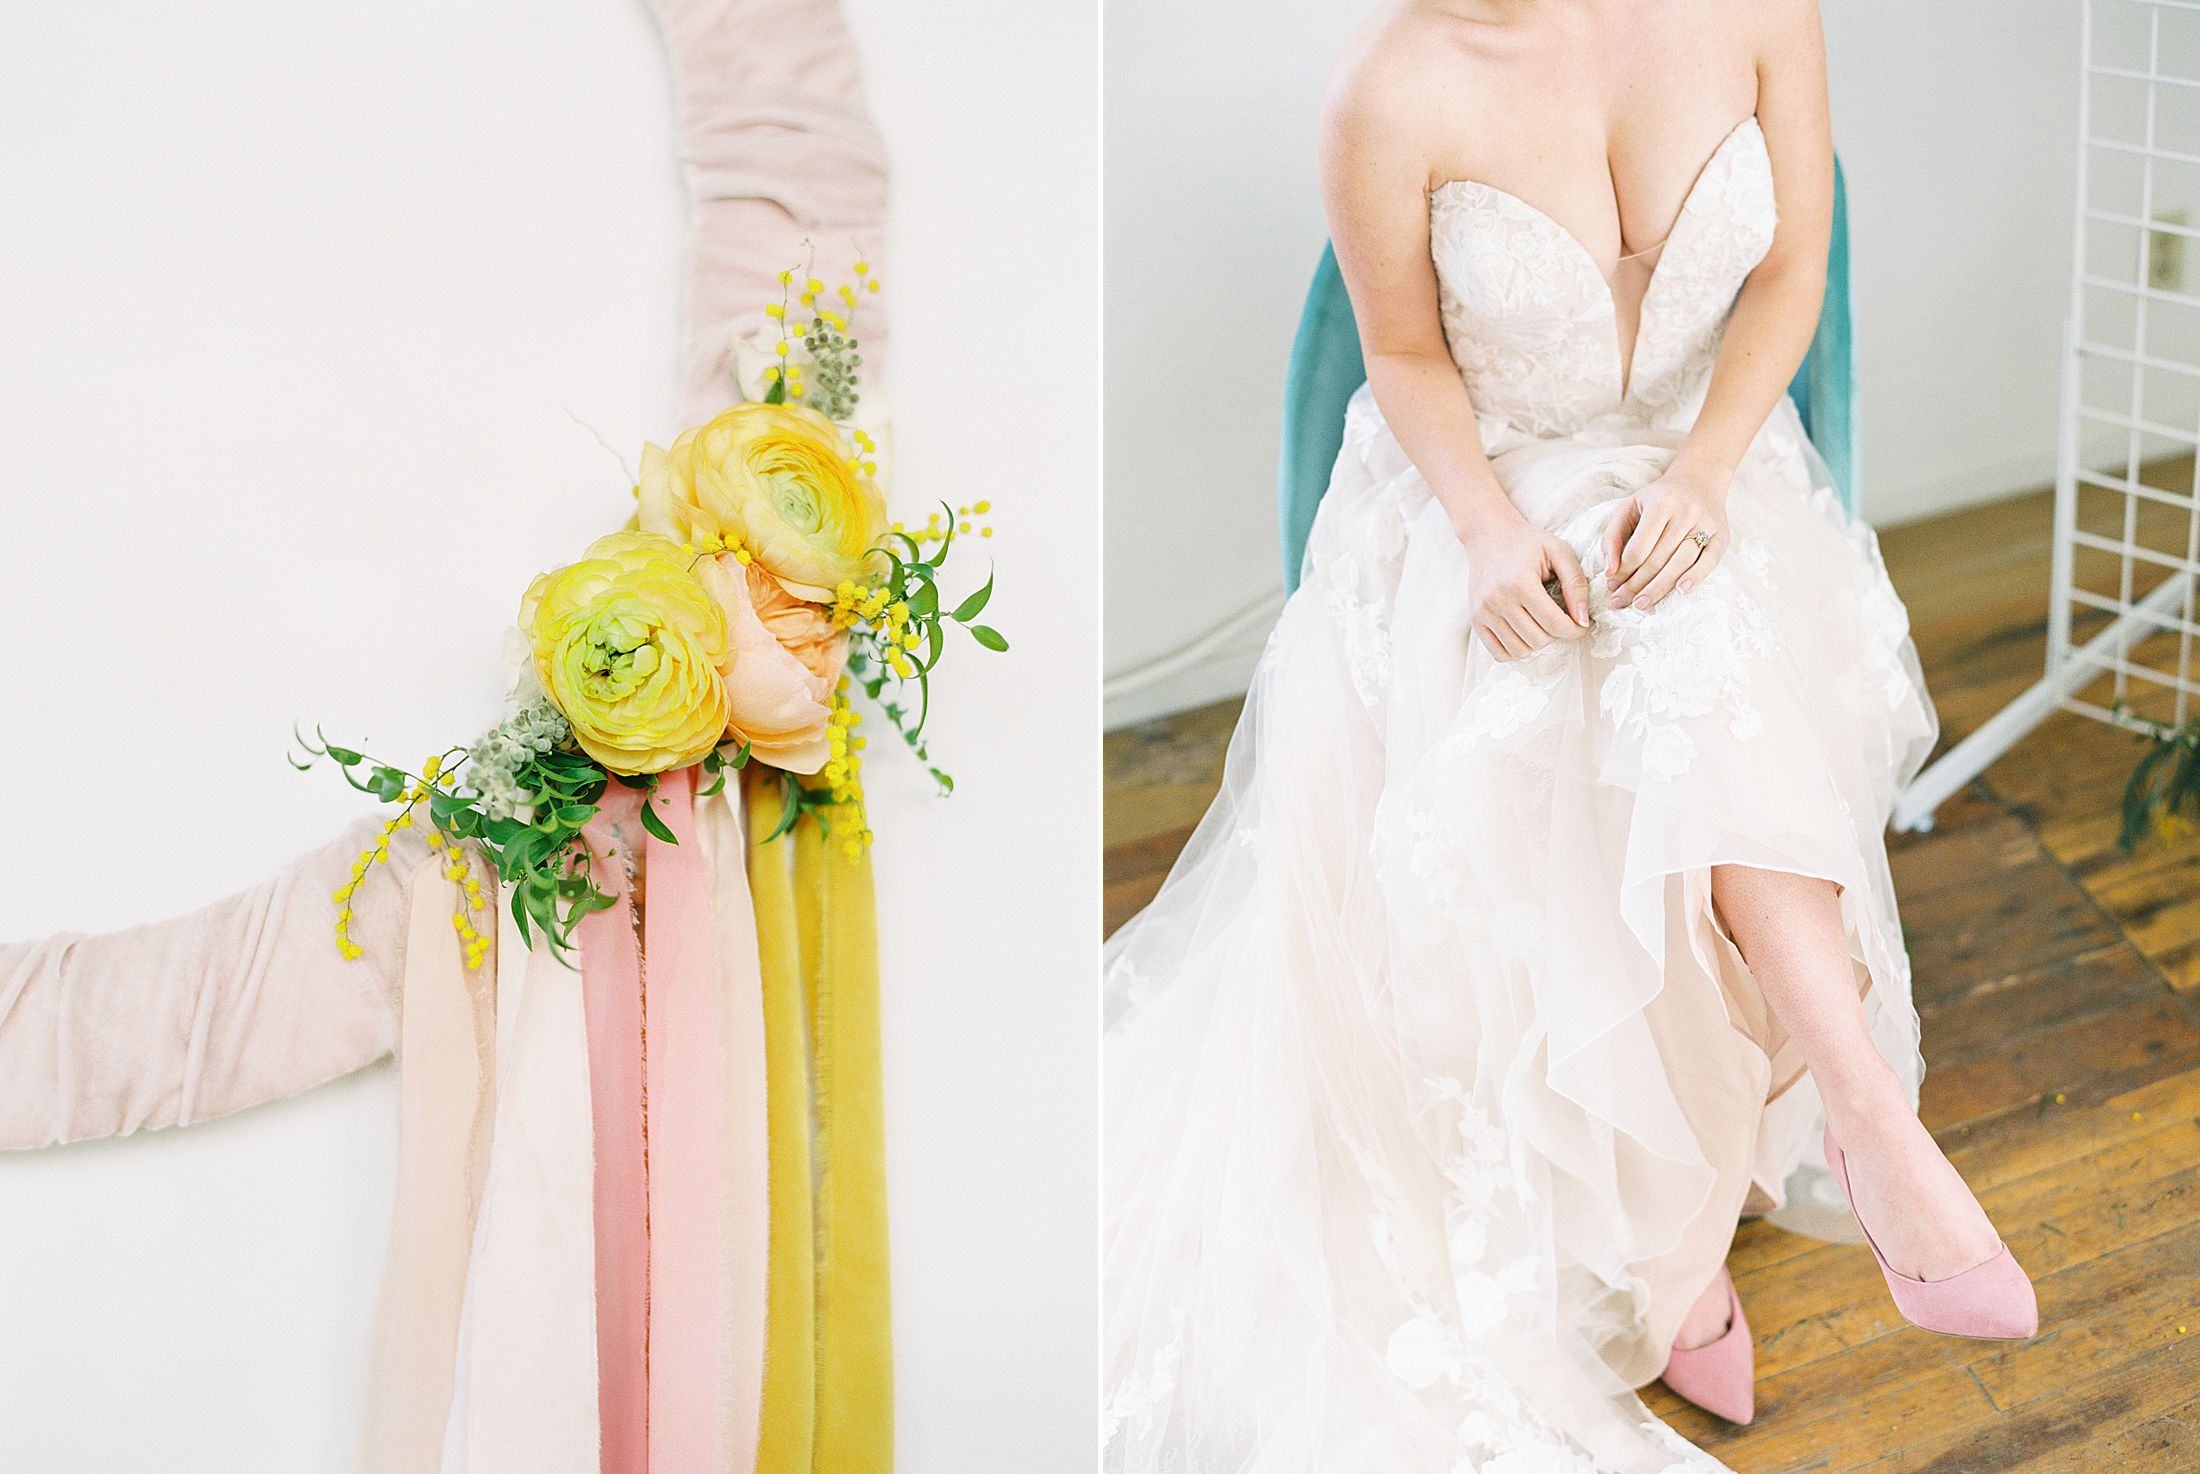 Bay Area Spring Wedding Inspiration - Ashley Baumgartner - Inspired By This - Party Crush Studio and Lens of Lenox Videography - Bay Area Wedding Photography_0059.jpg